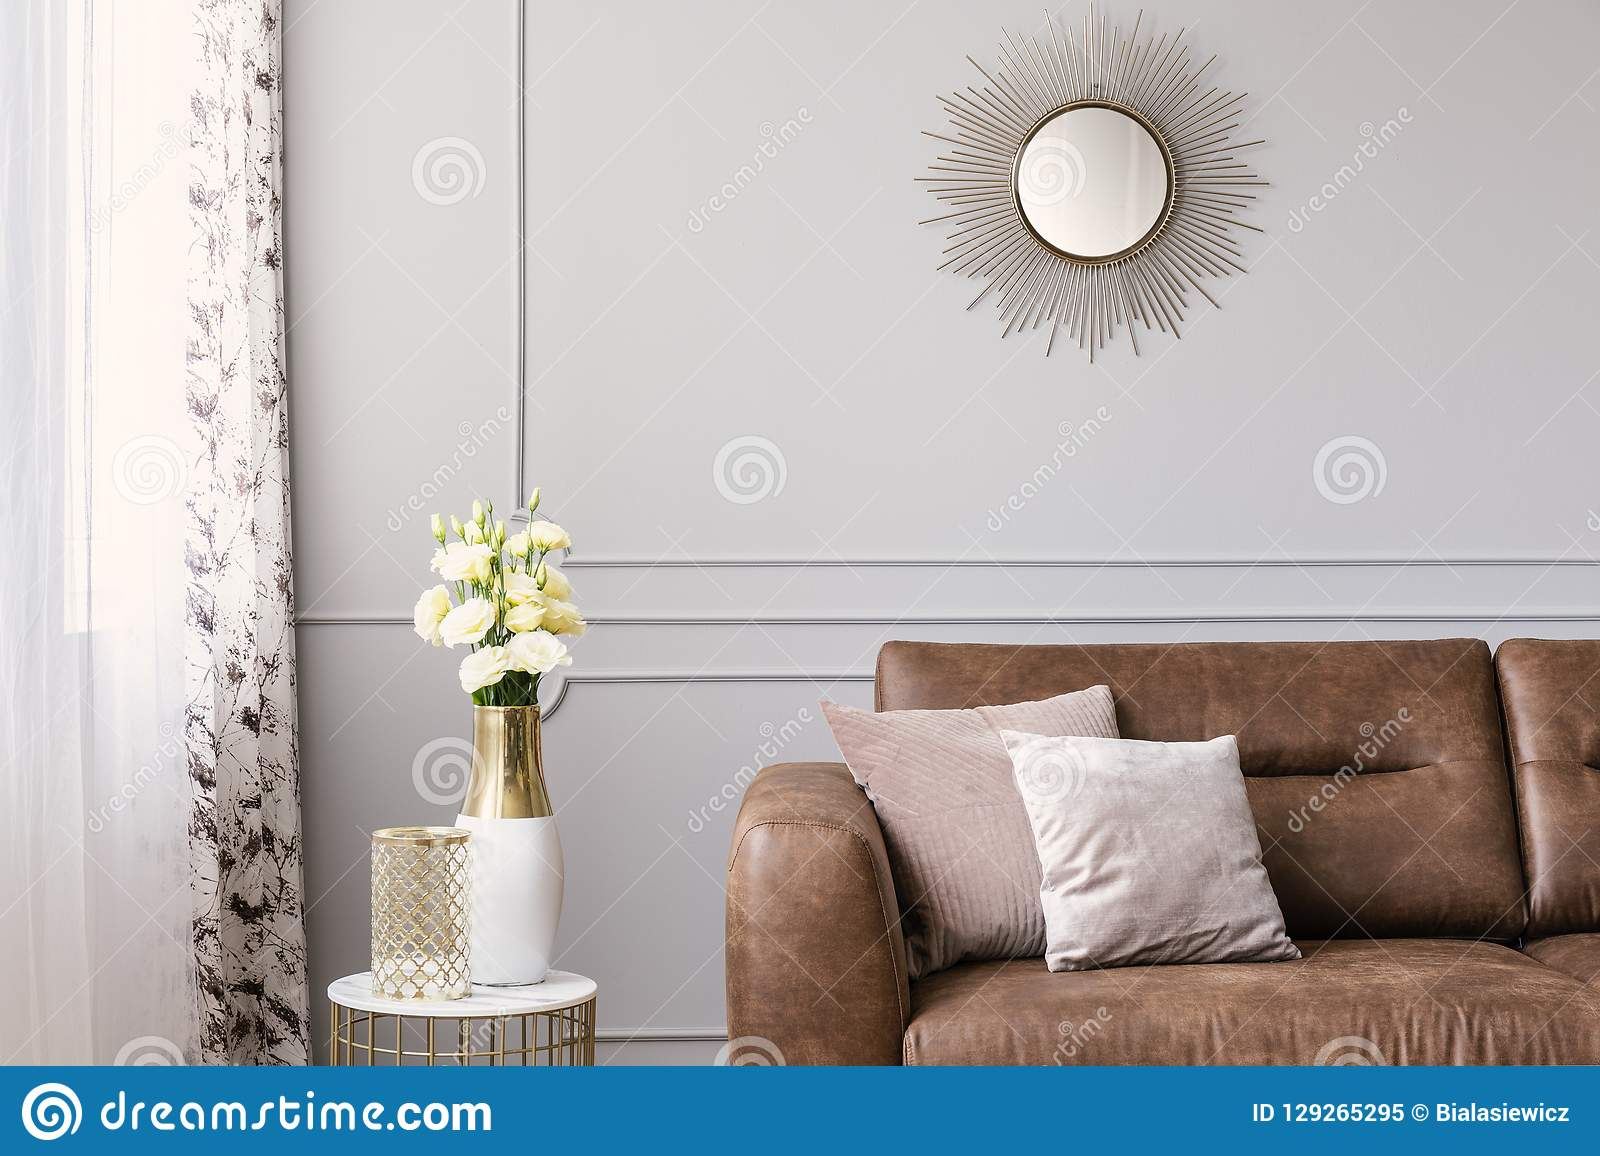 Sun like shaped mirror above leather sofa with pillows in grey elegant living room